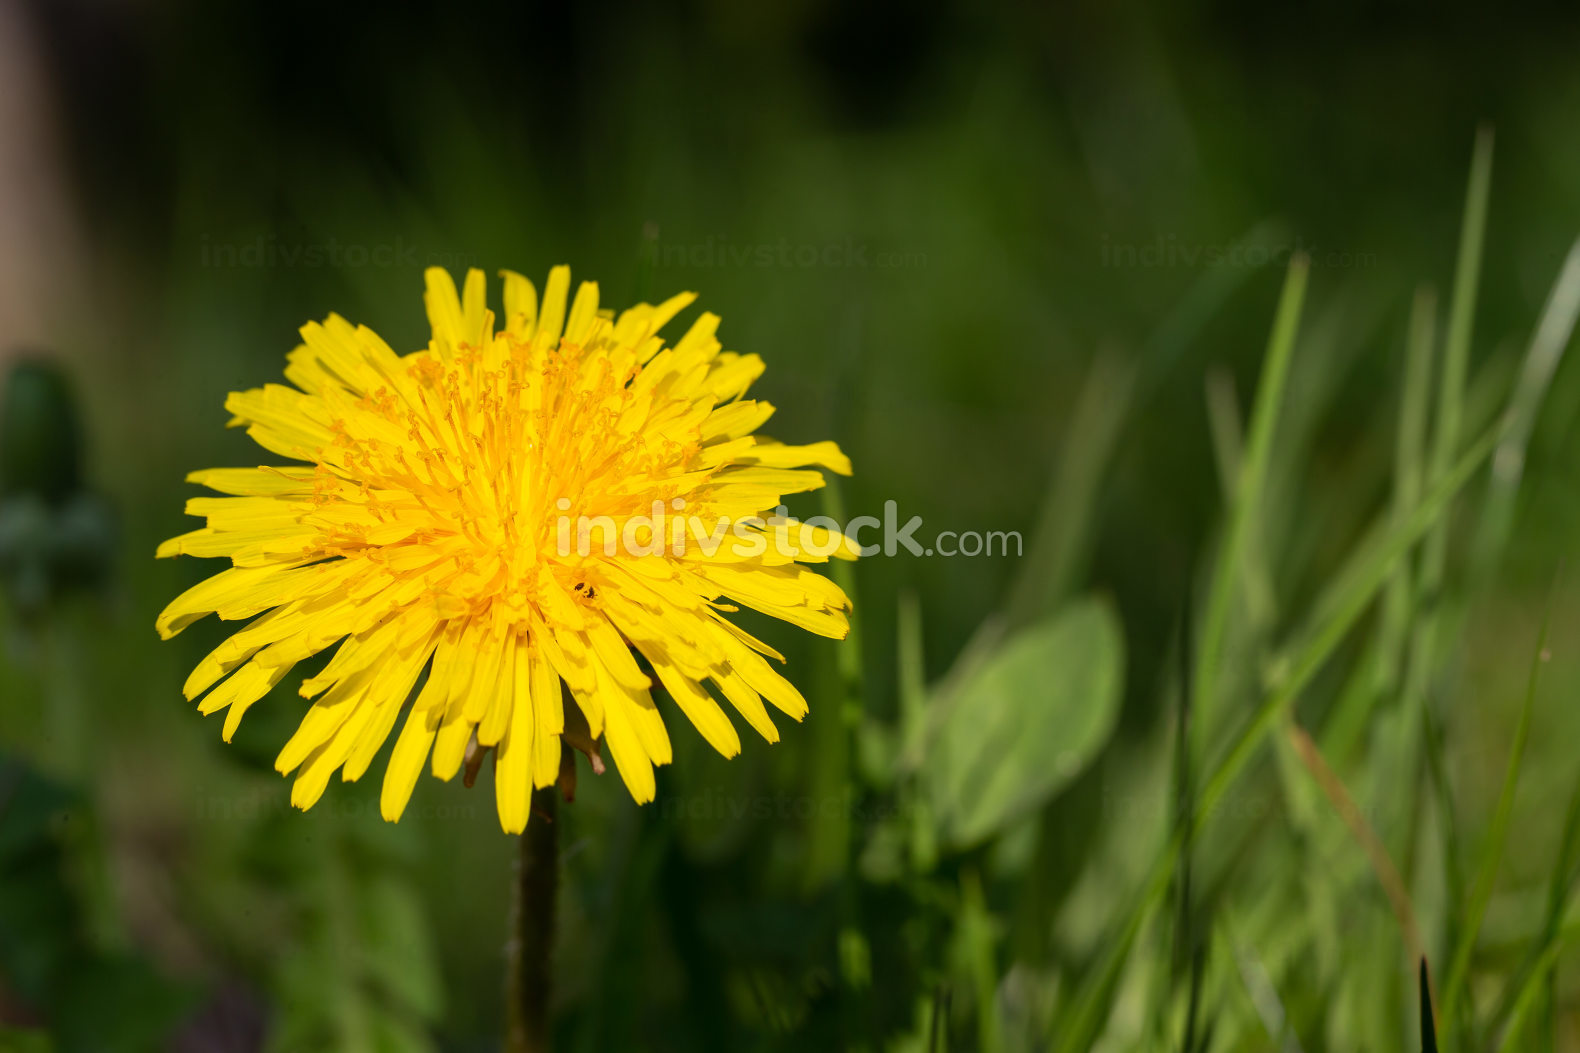 One Yellow dandelion in green grass in the meadow